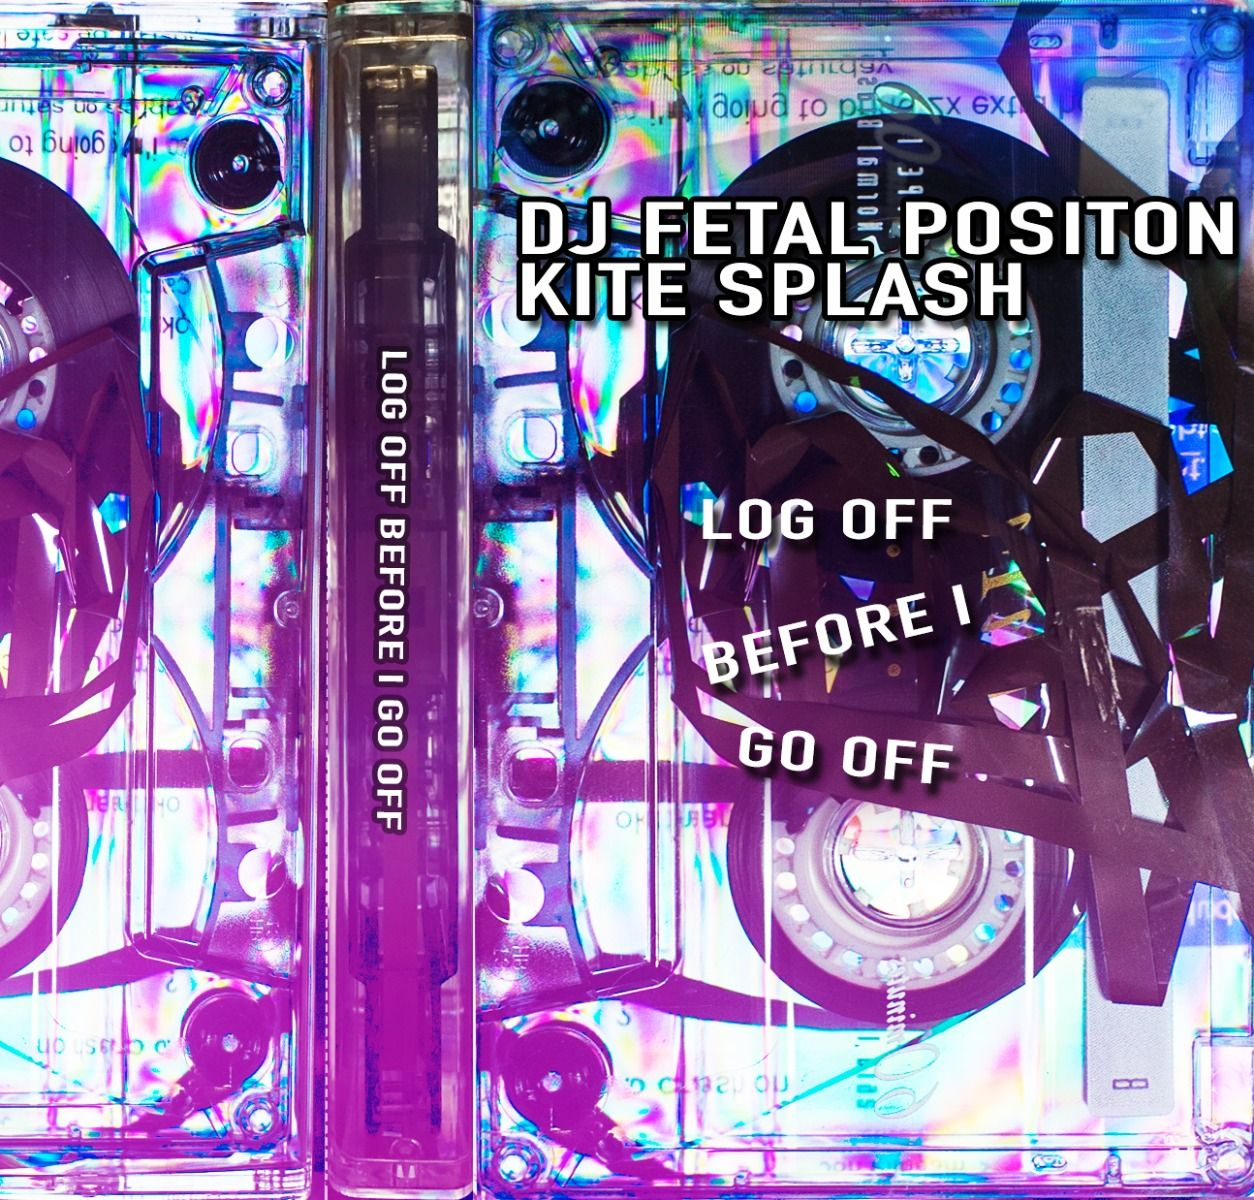 Image of kite splash & dj fetal position - log off before i go off